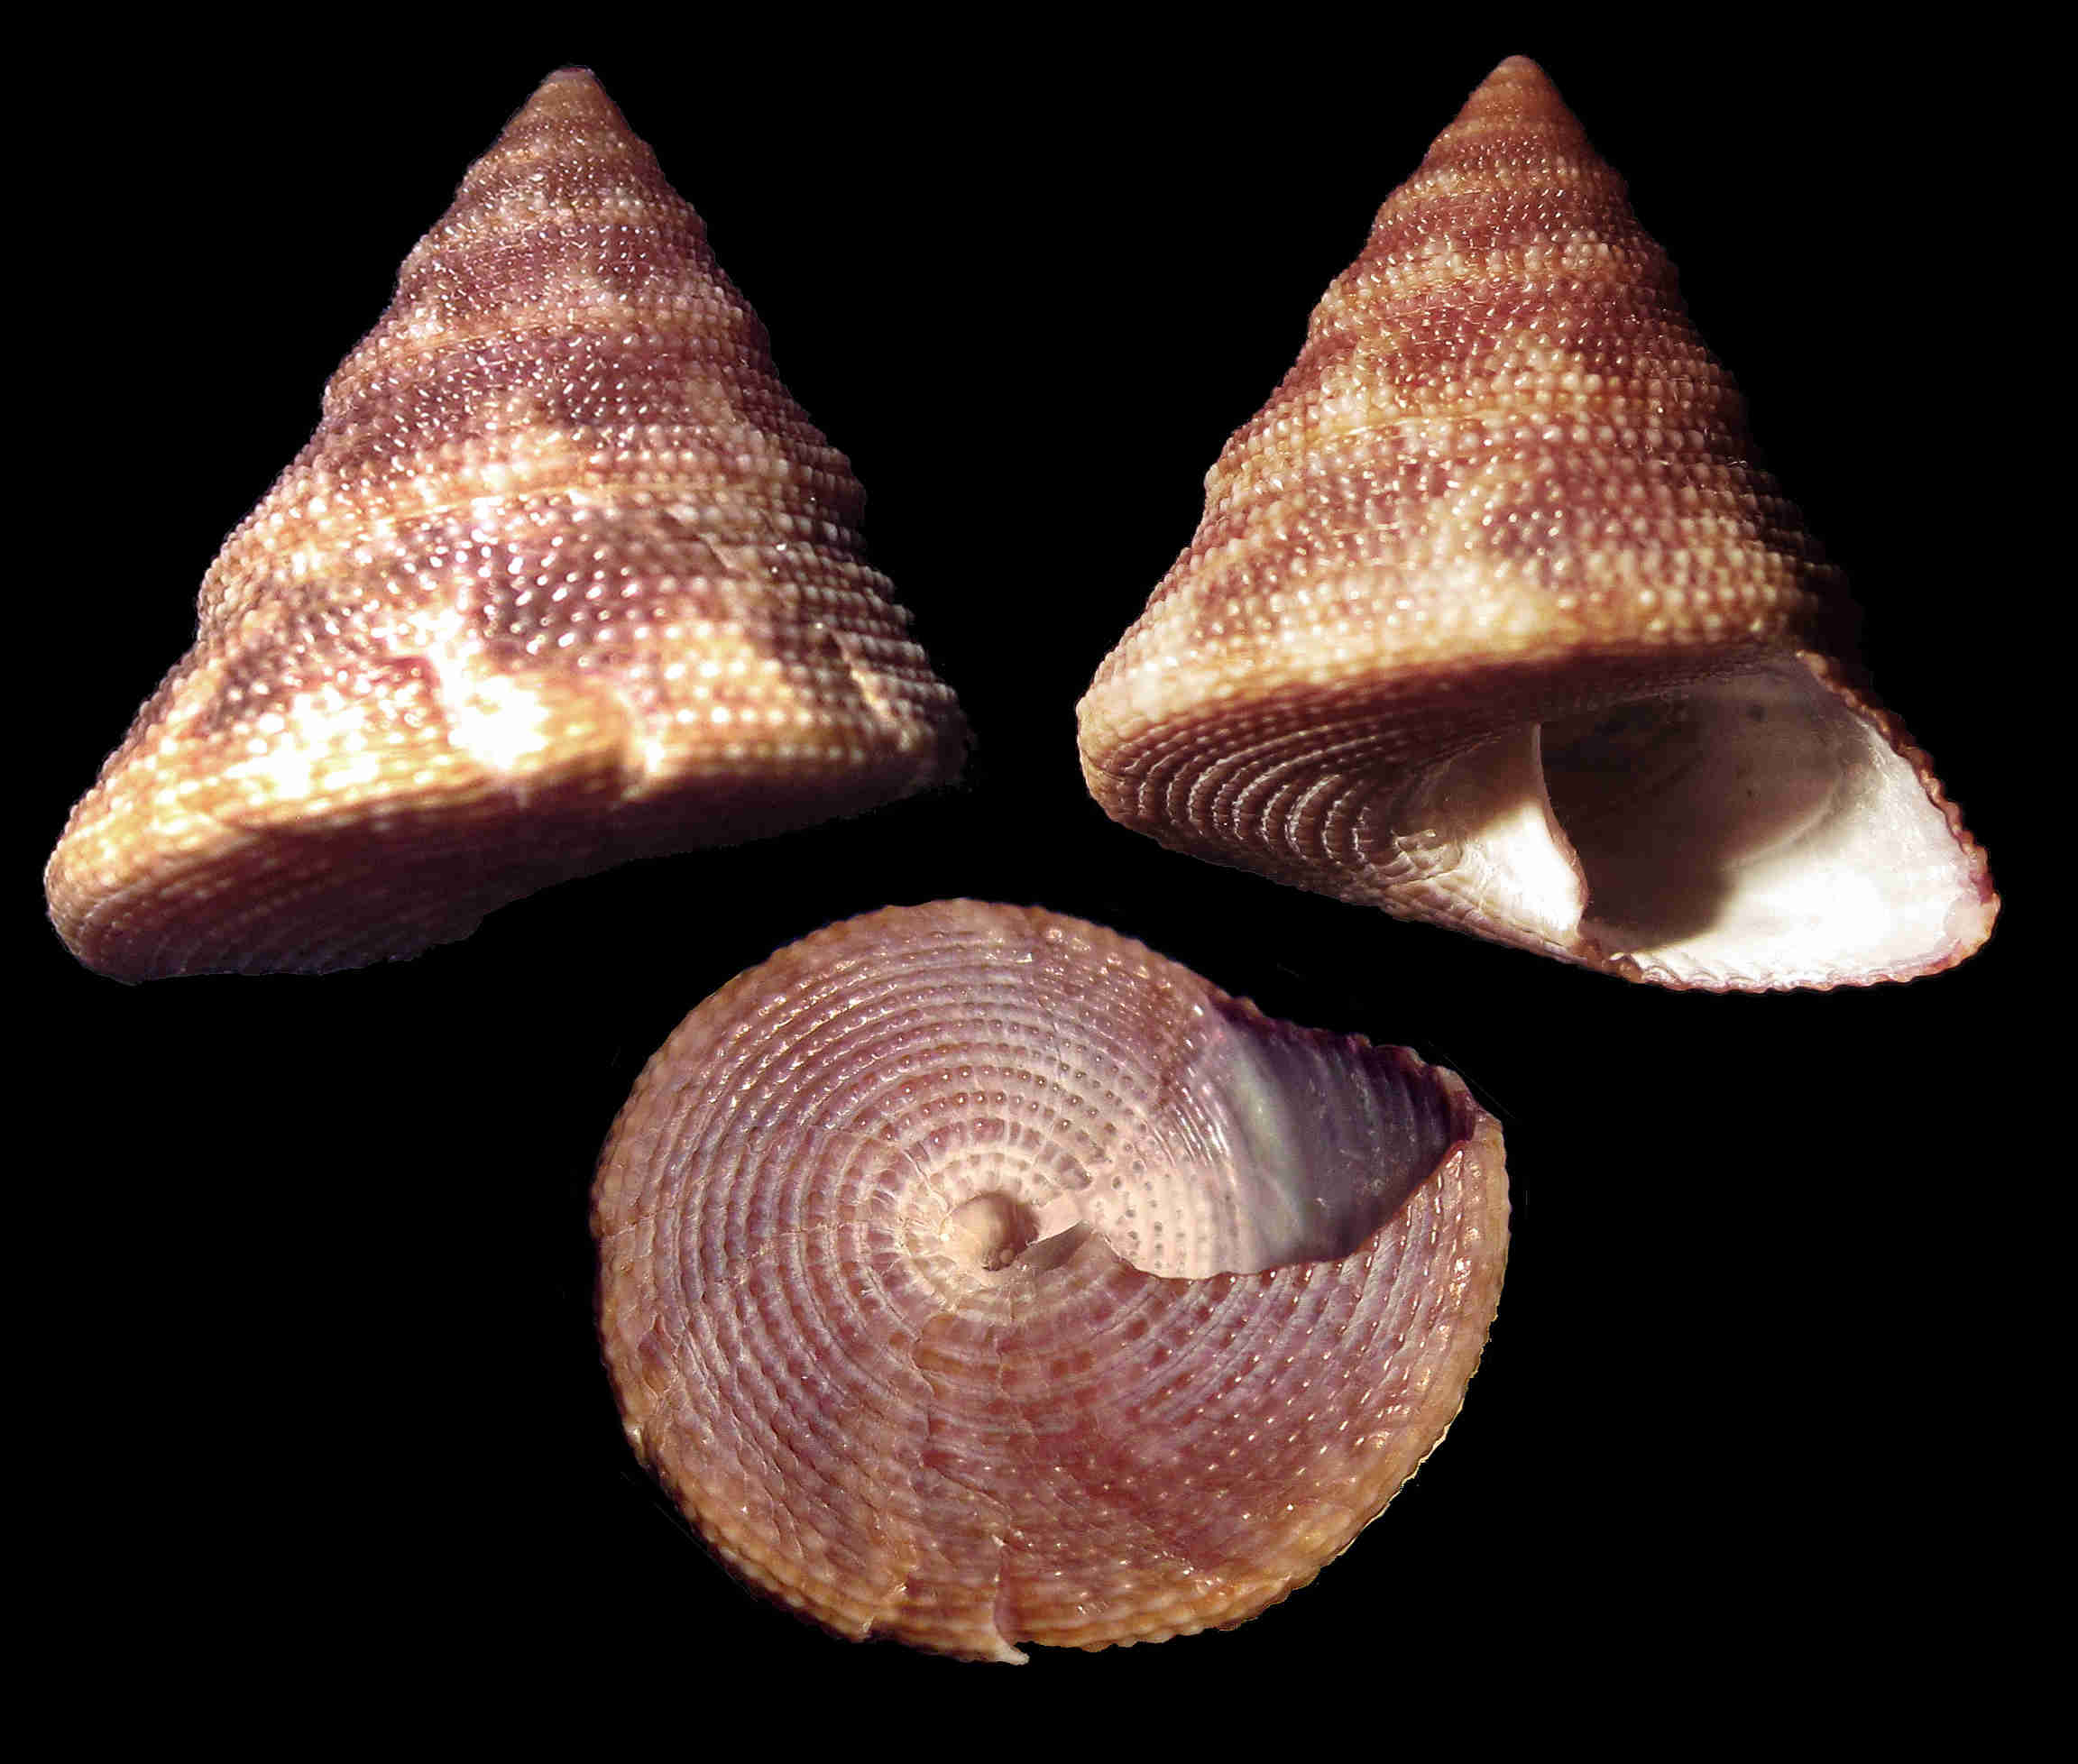 Gulf Stream Top Snail